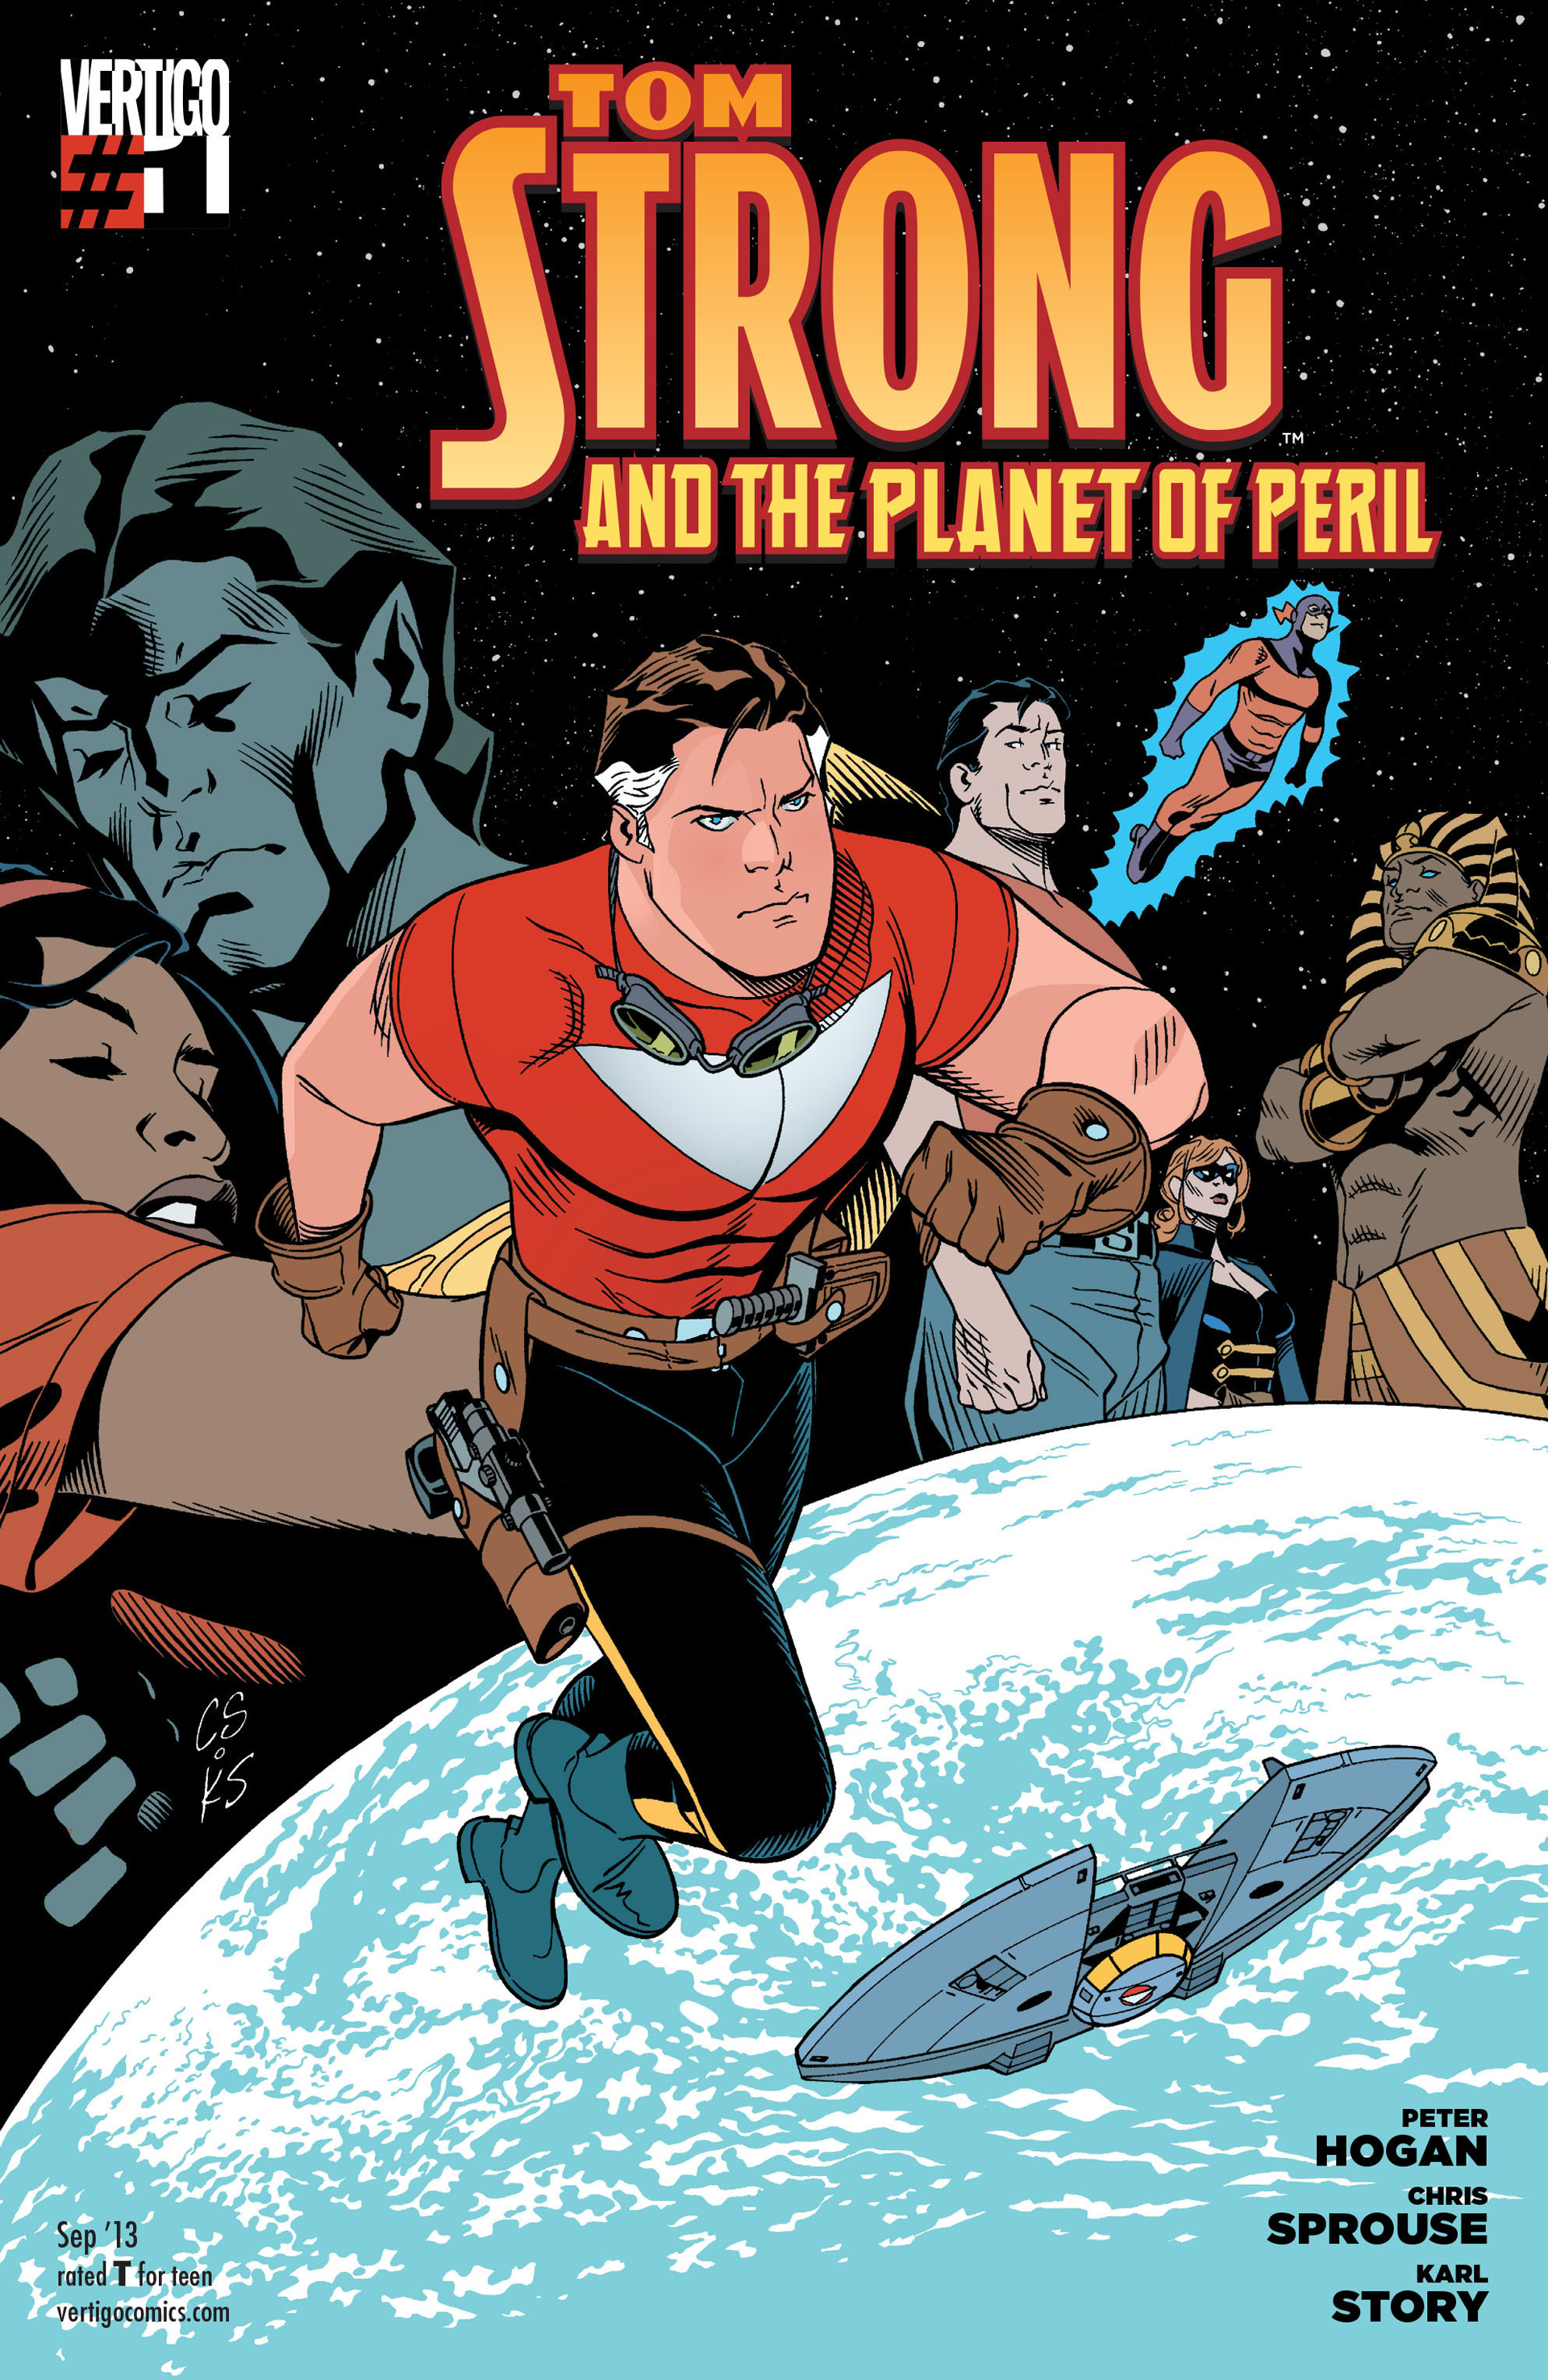 Tom Strong And The Planet Of Peril Pics, Comics Collection